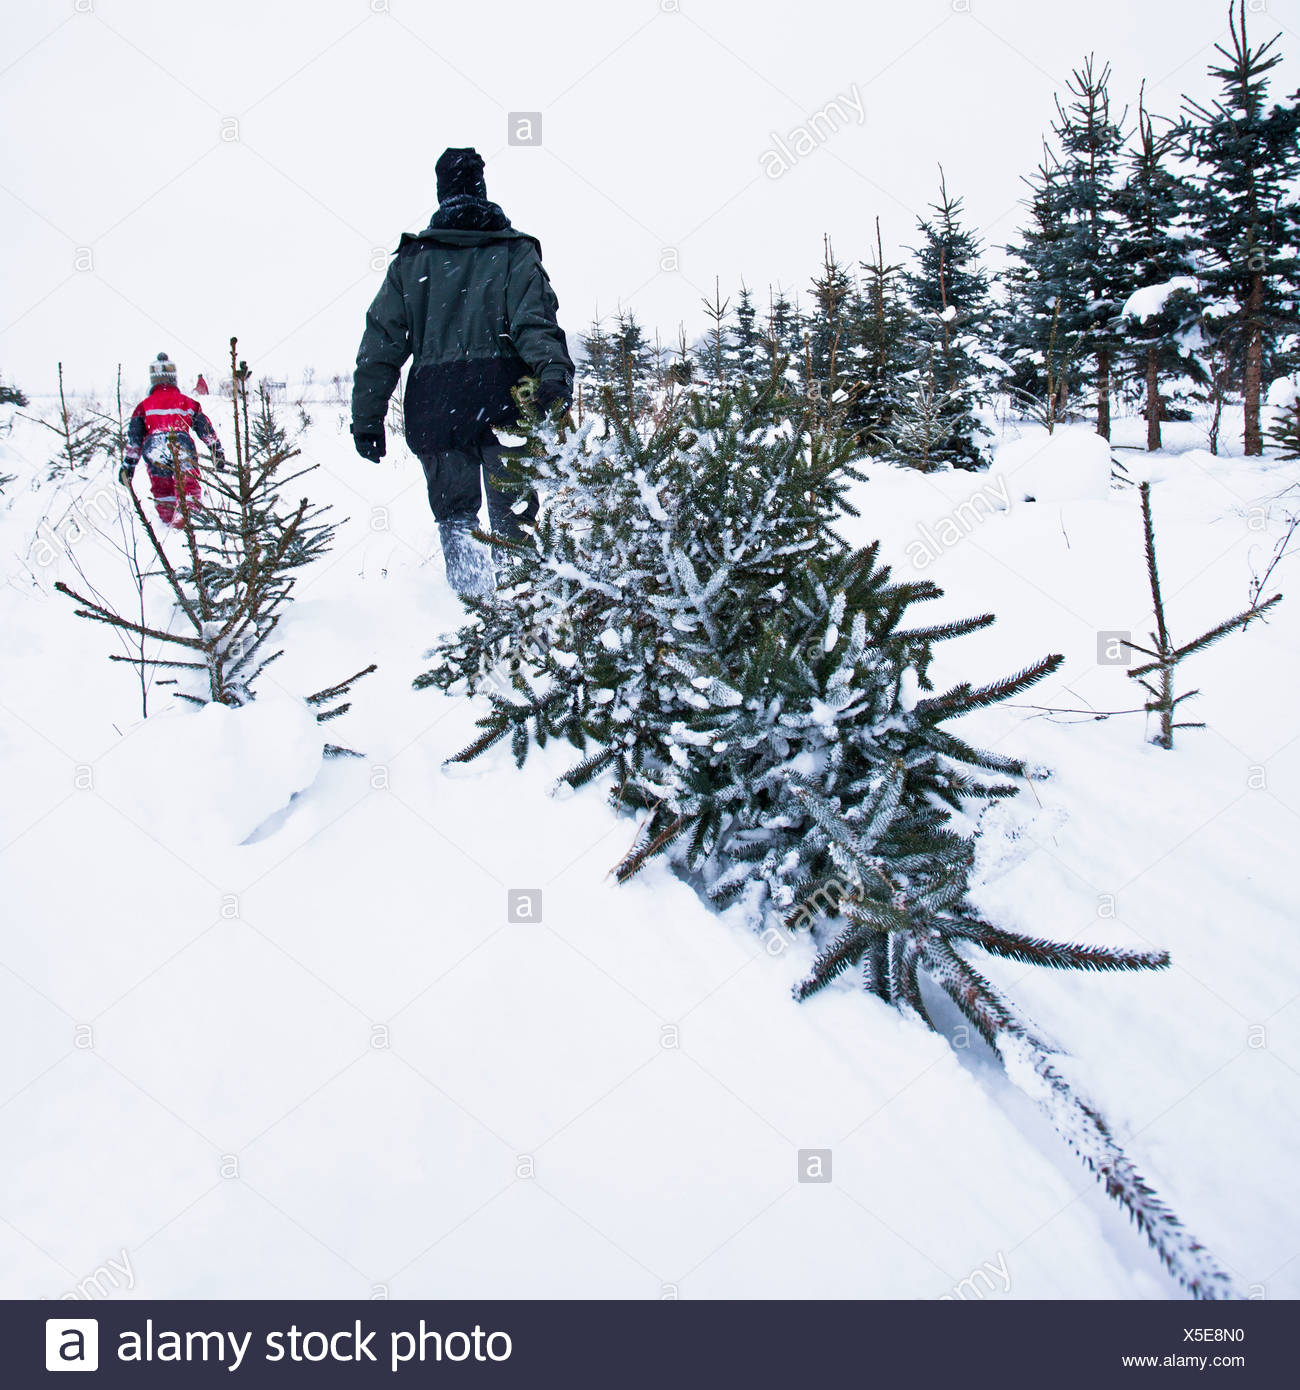 Personne pulling Christmas Tree Photo Stock